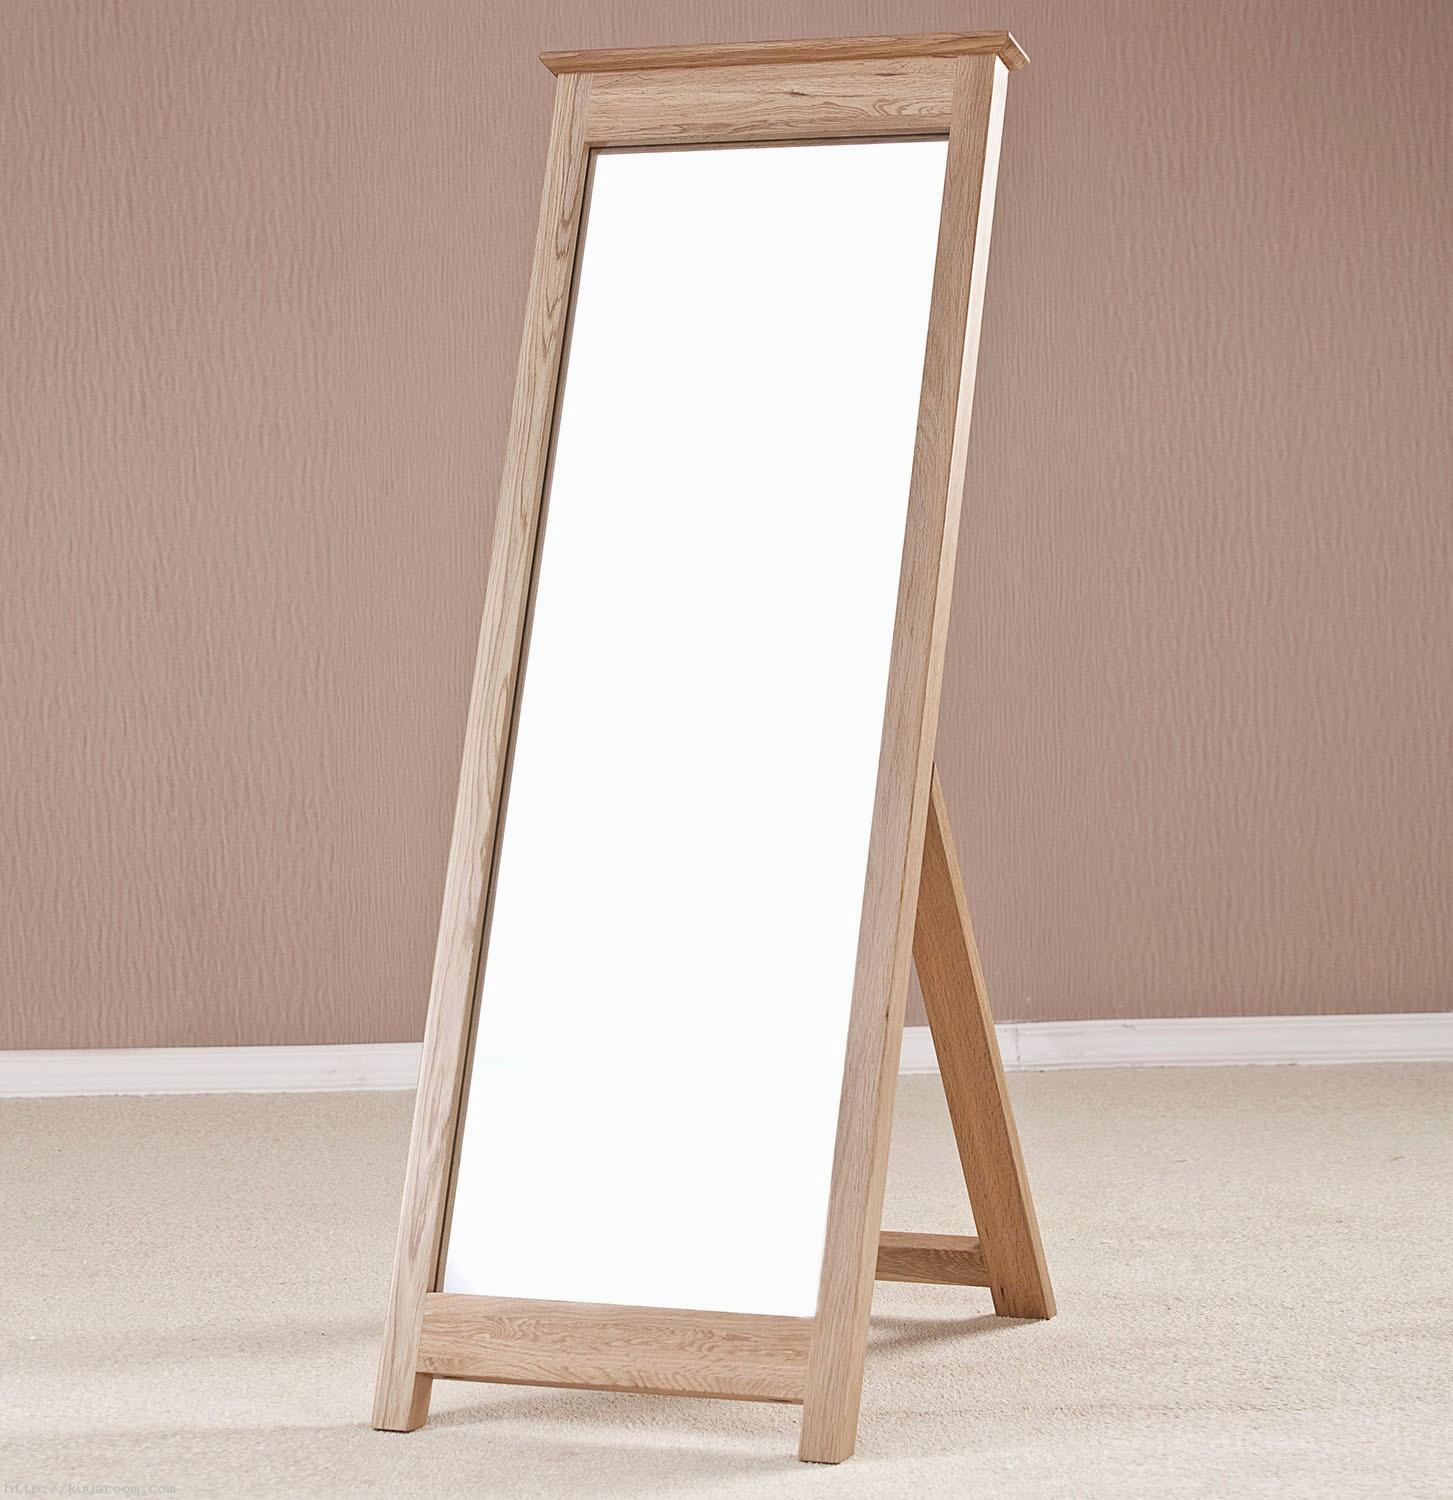 ikea-uk-bedroom-mirrors-zyhj8n3uo